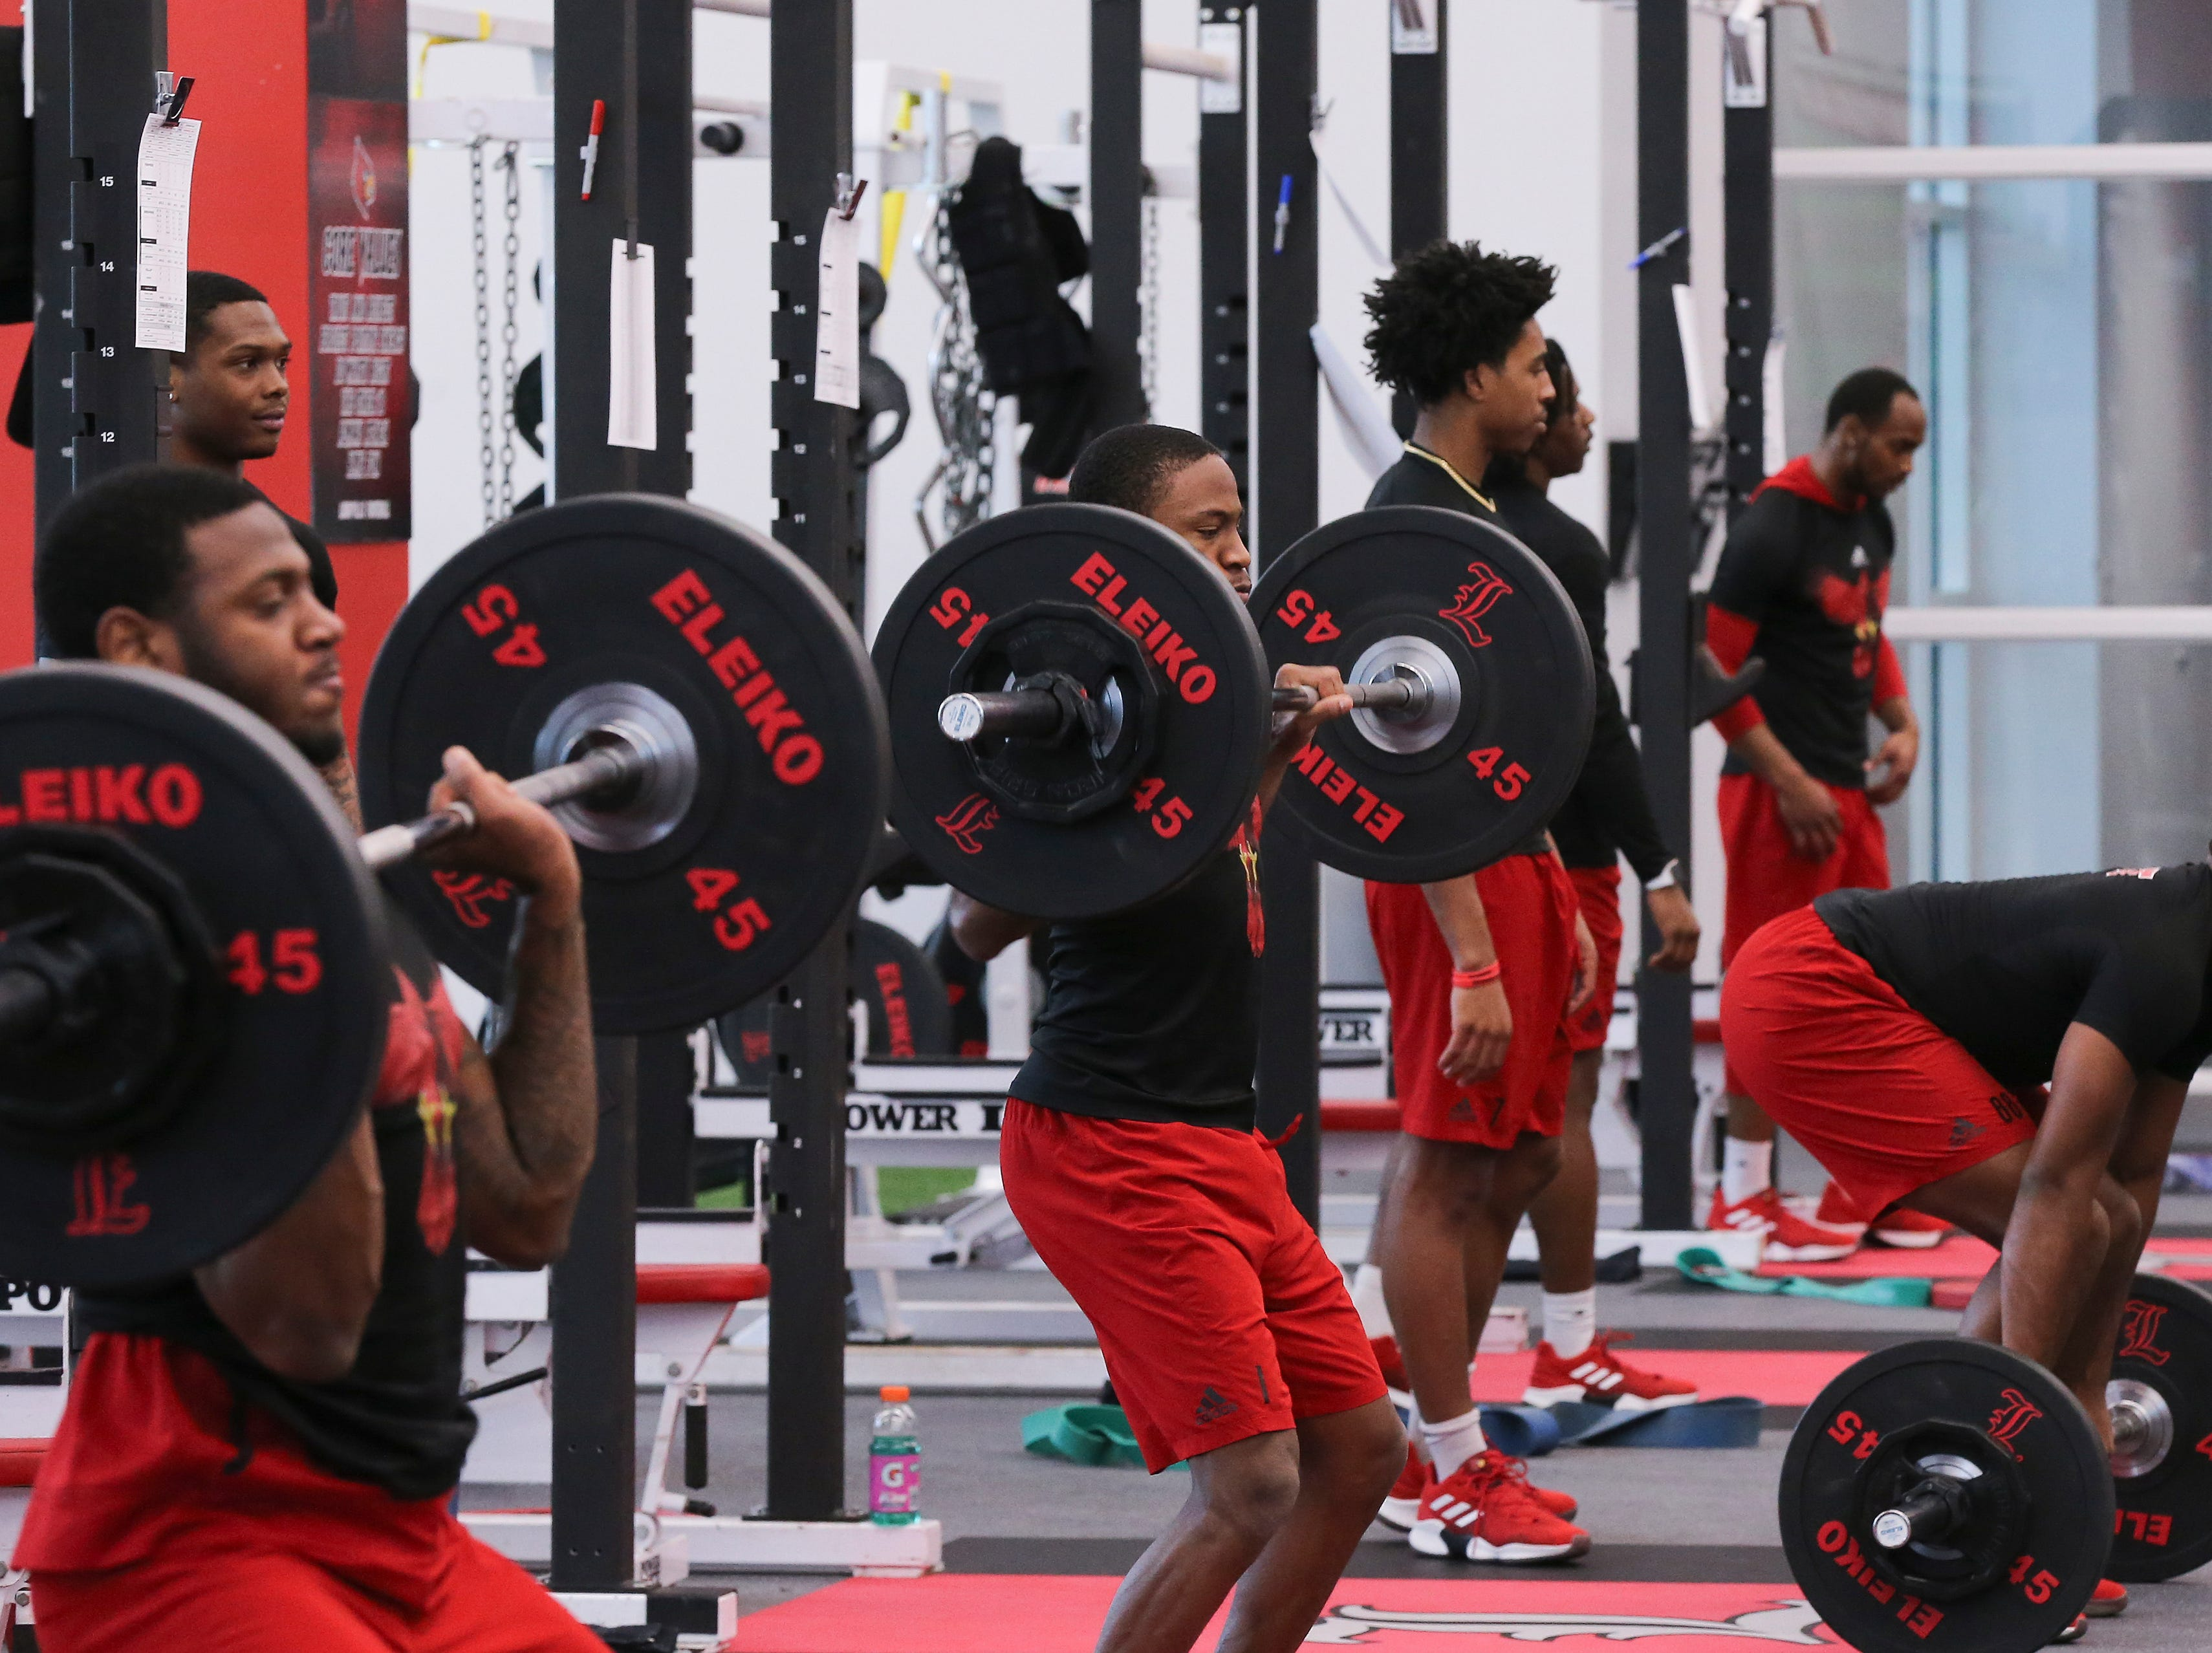 The U of L football team works out during strength and conditioning at the Schnellenberger Complex.